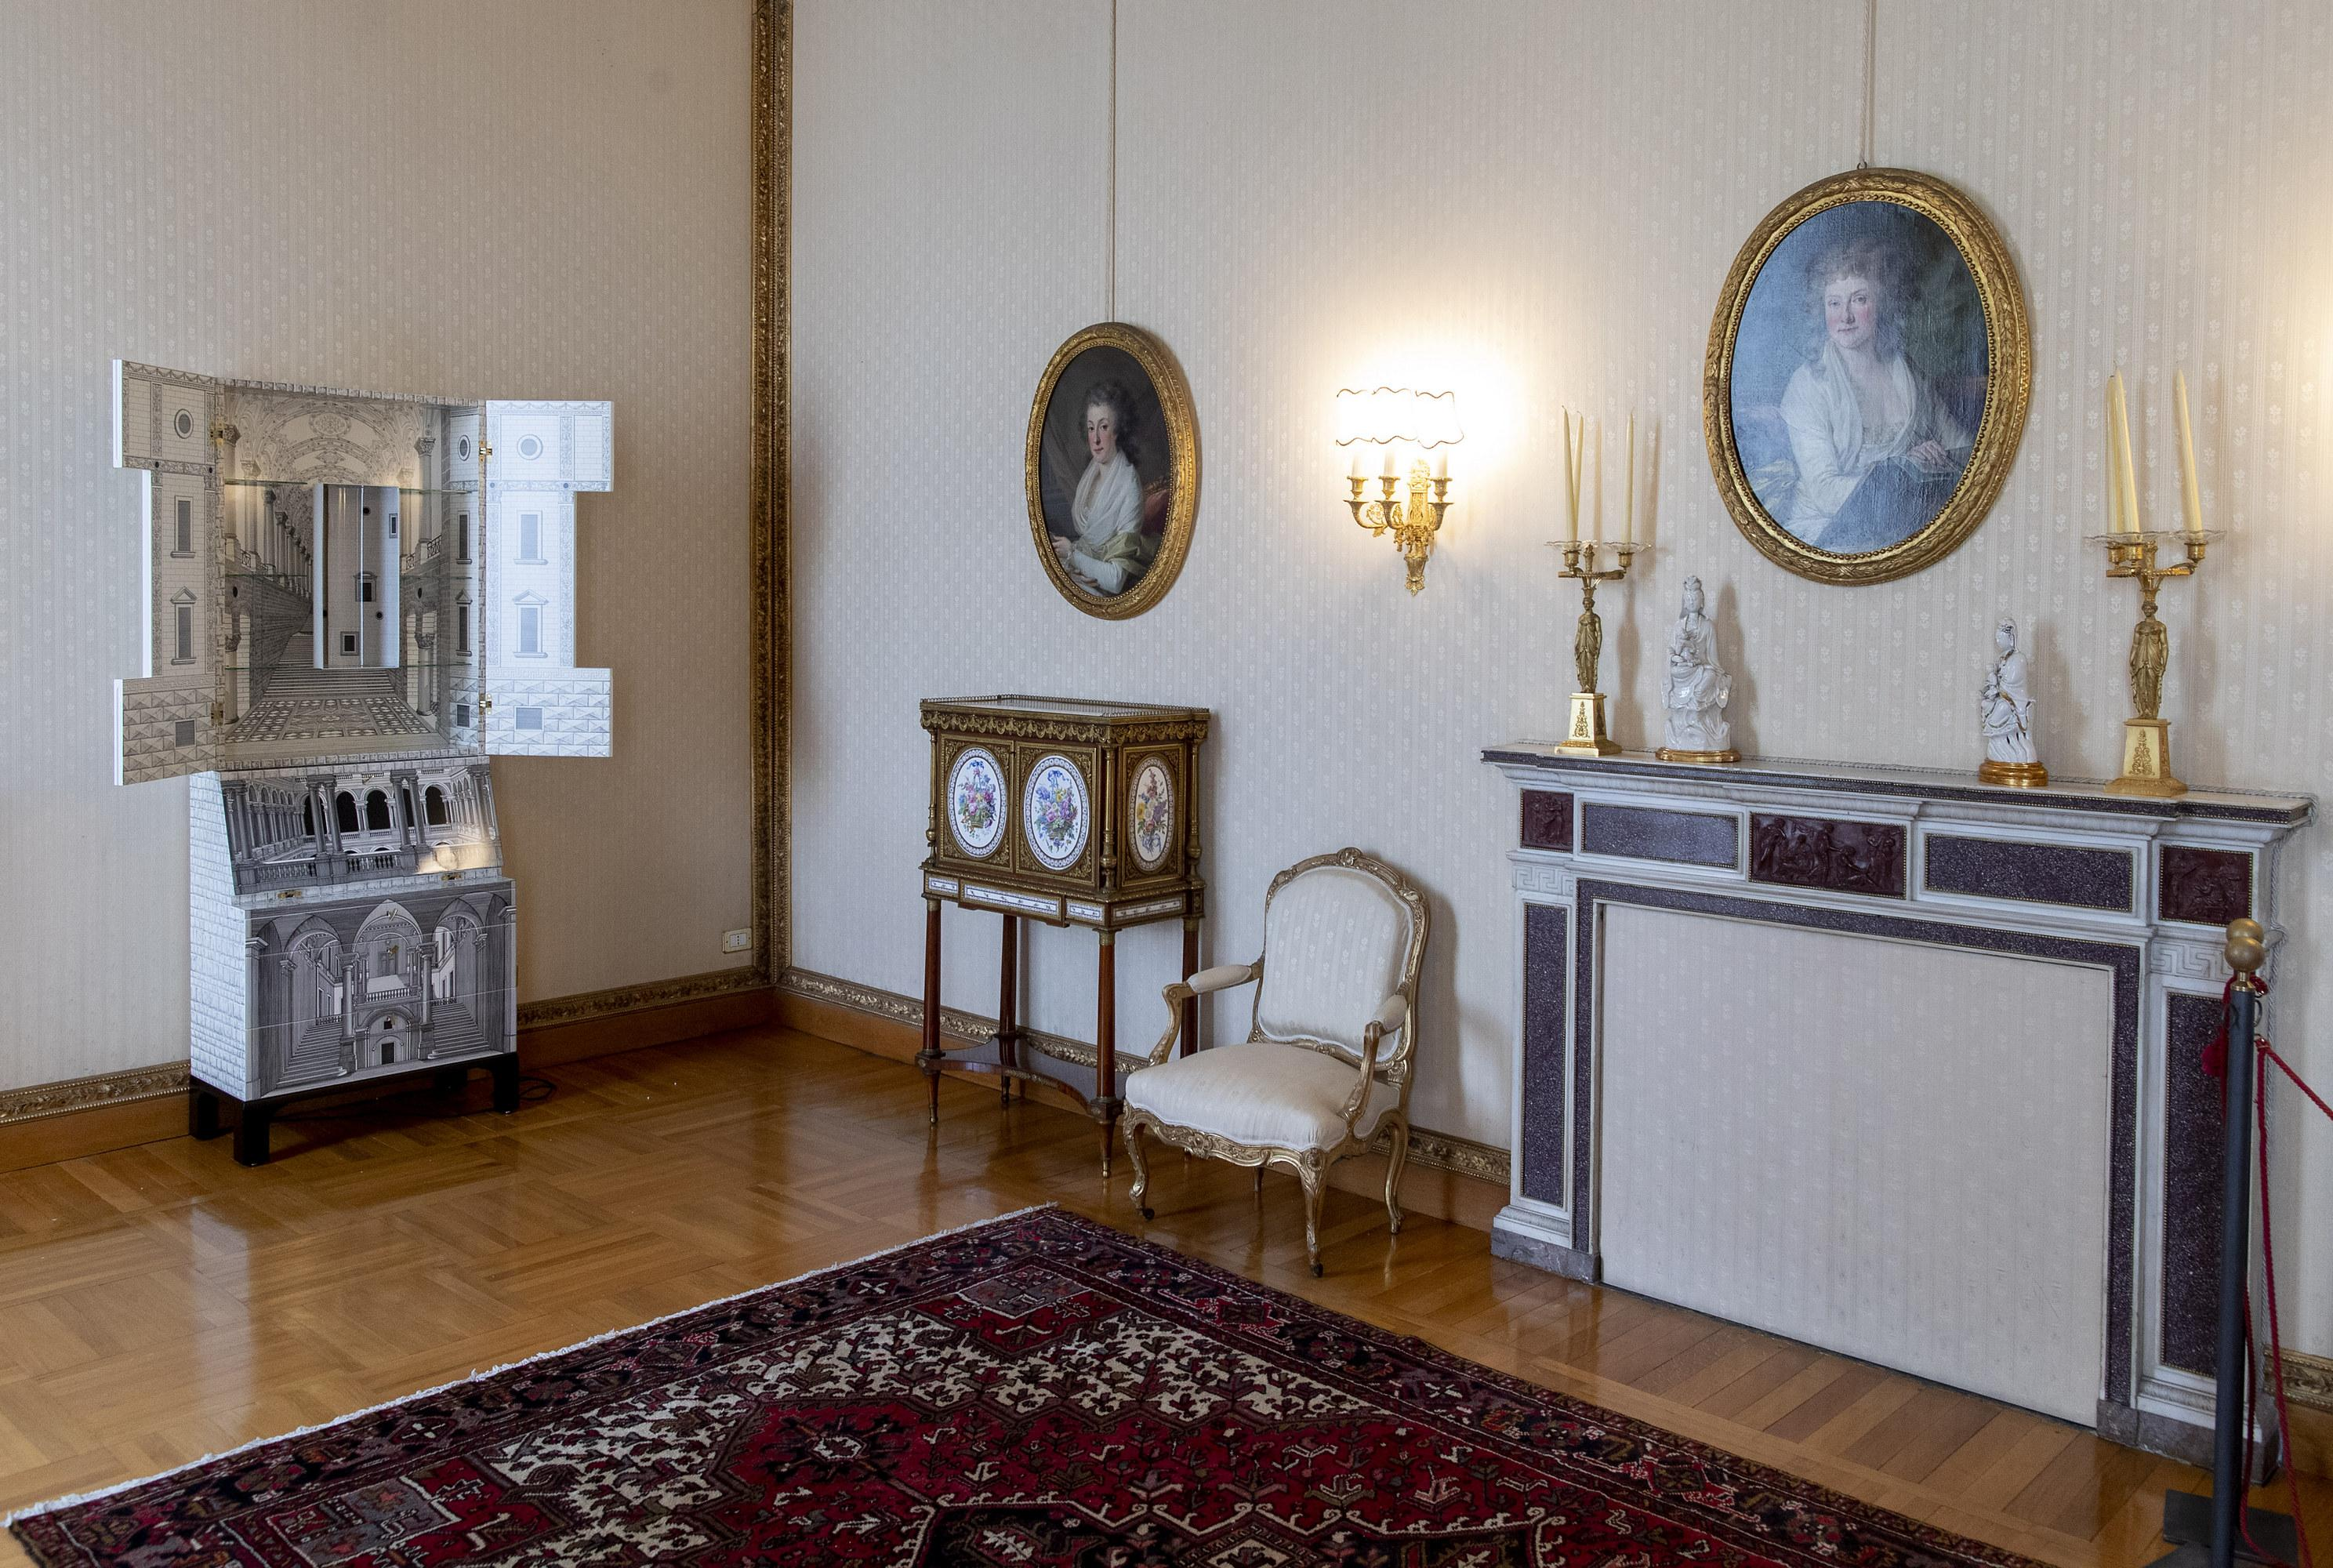 fornasetti-in-the-president-palace 01